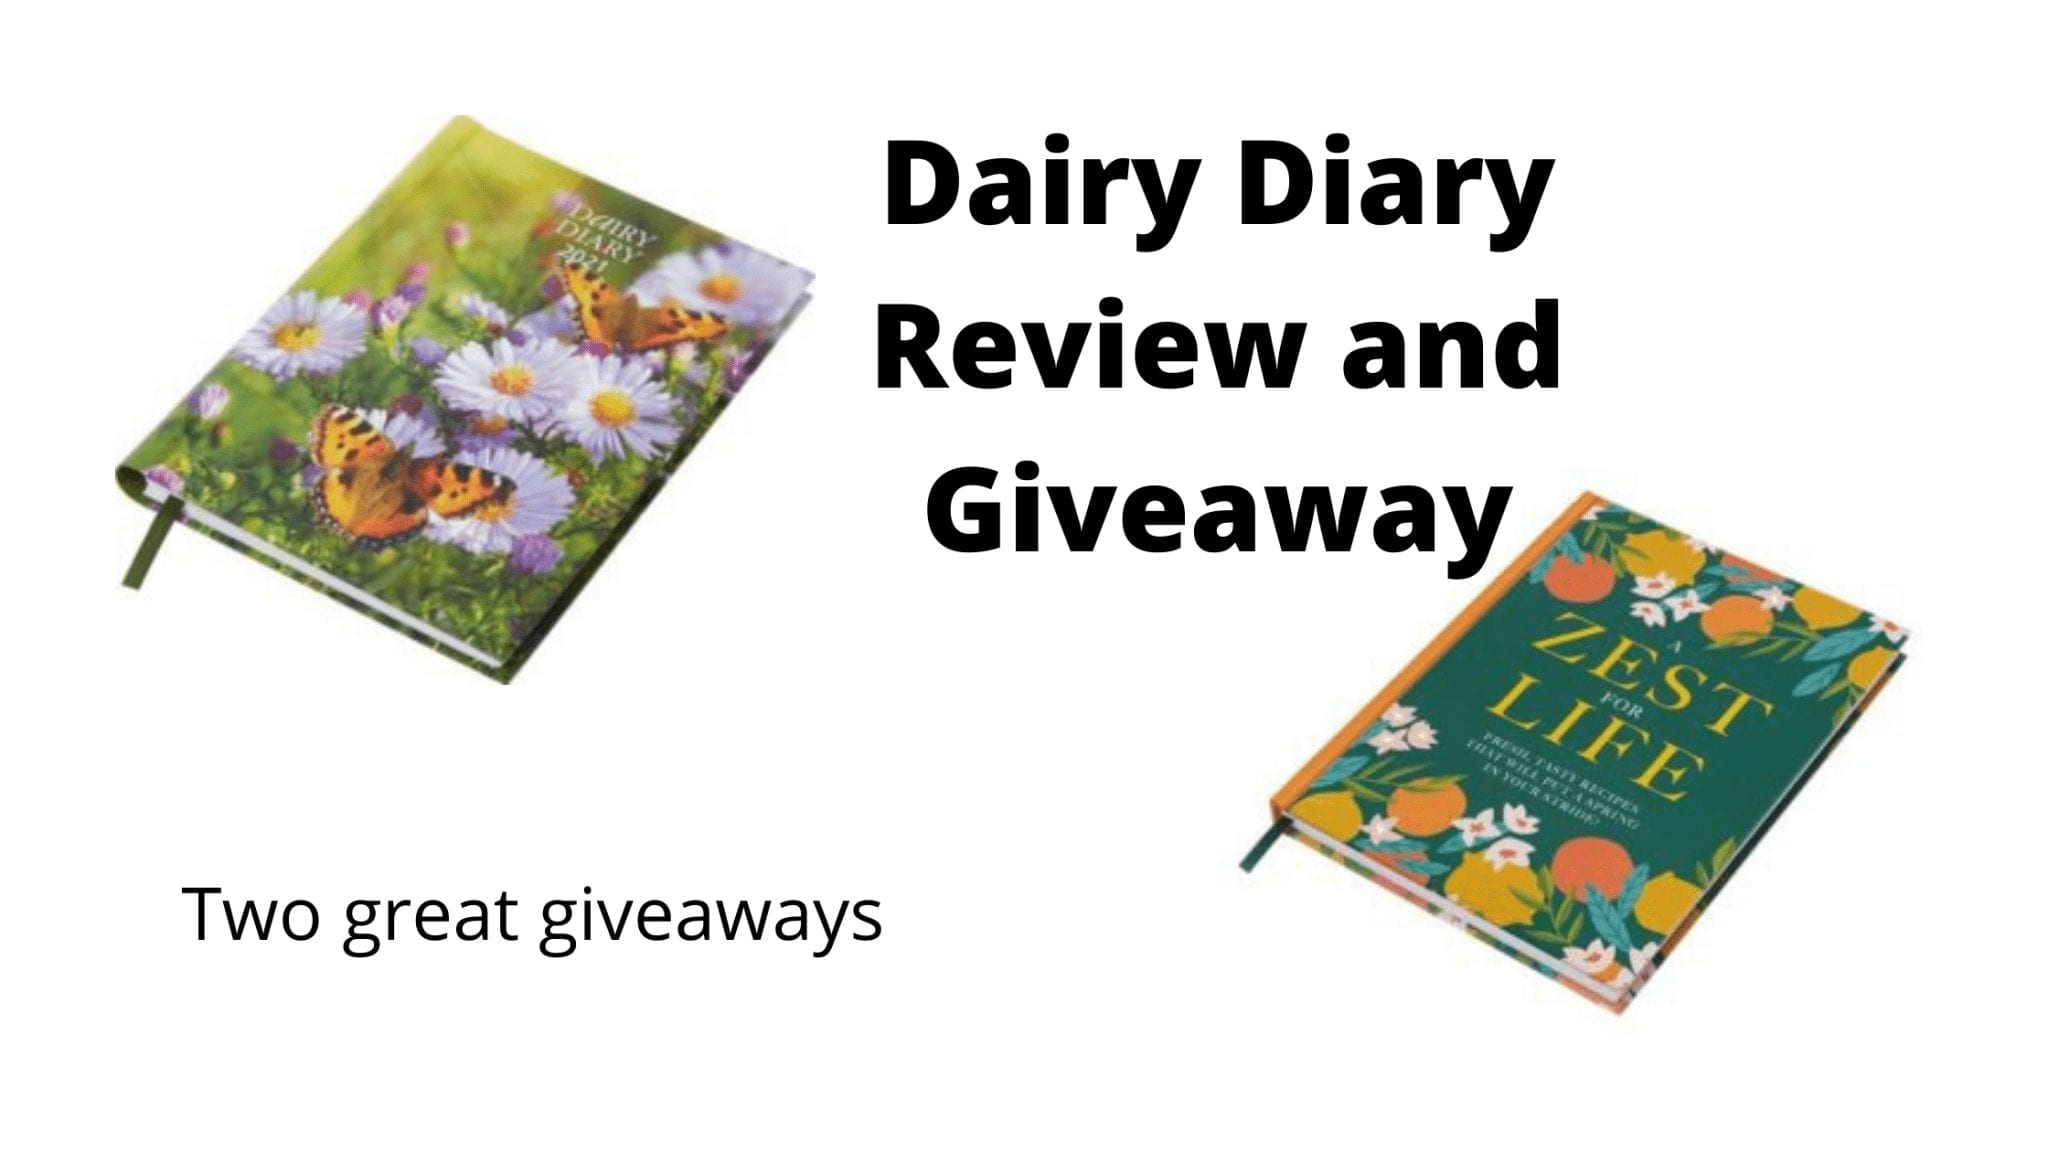 Dairy Diary Review and Giveaway